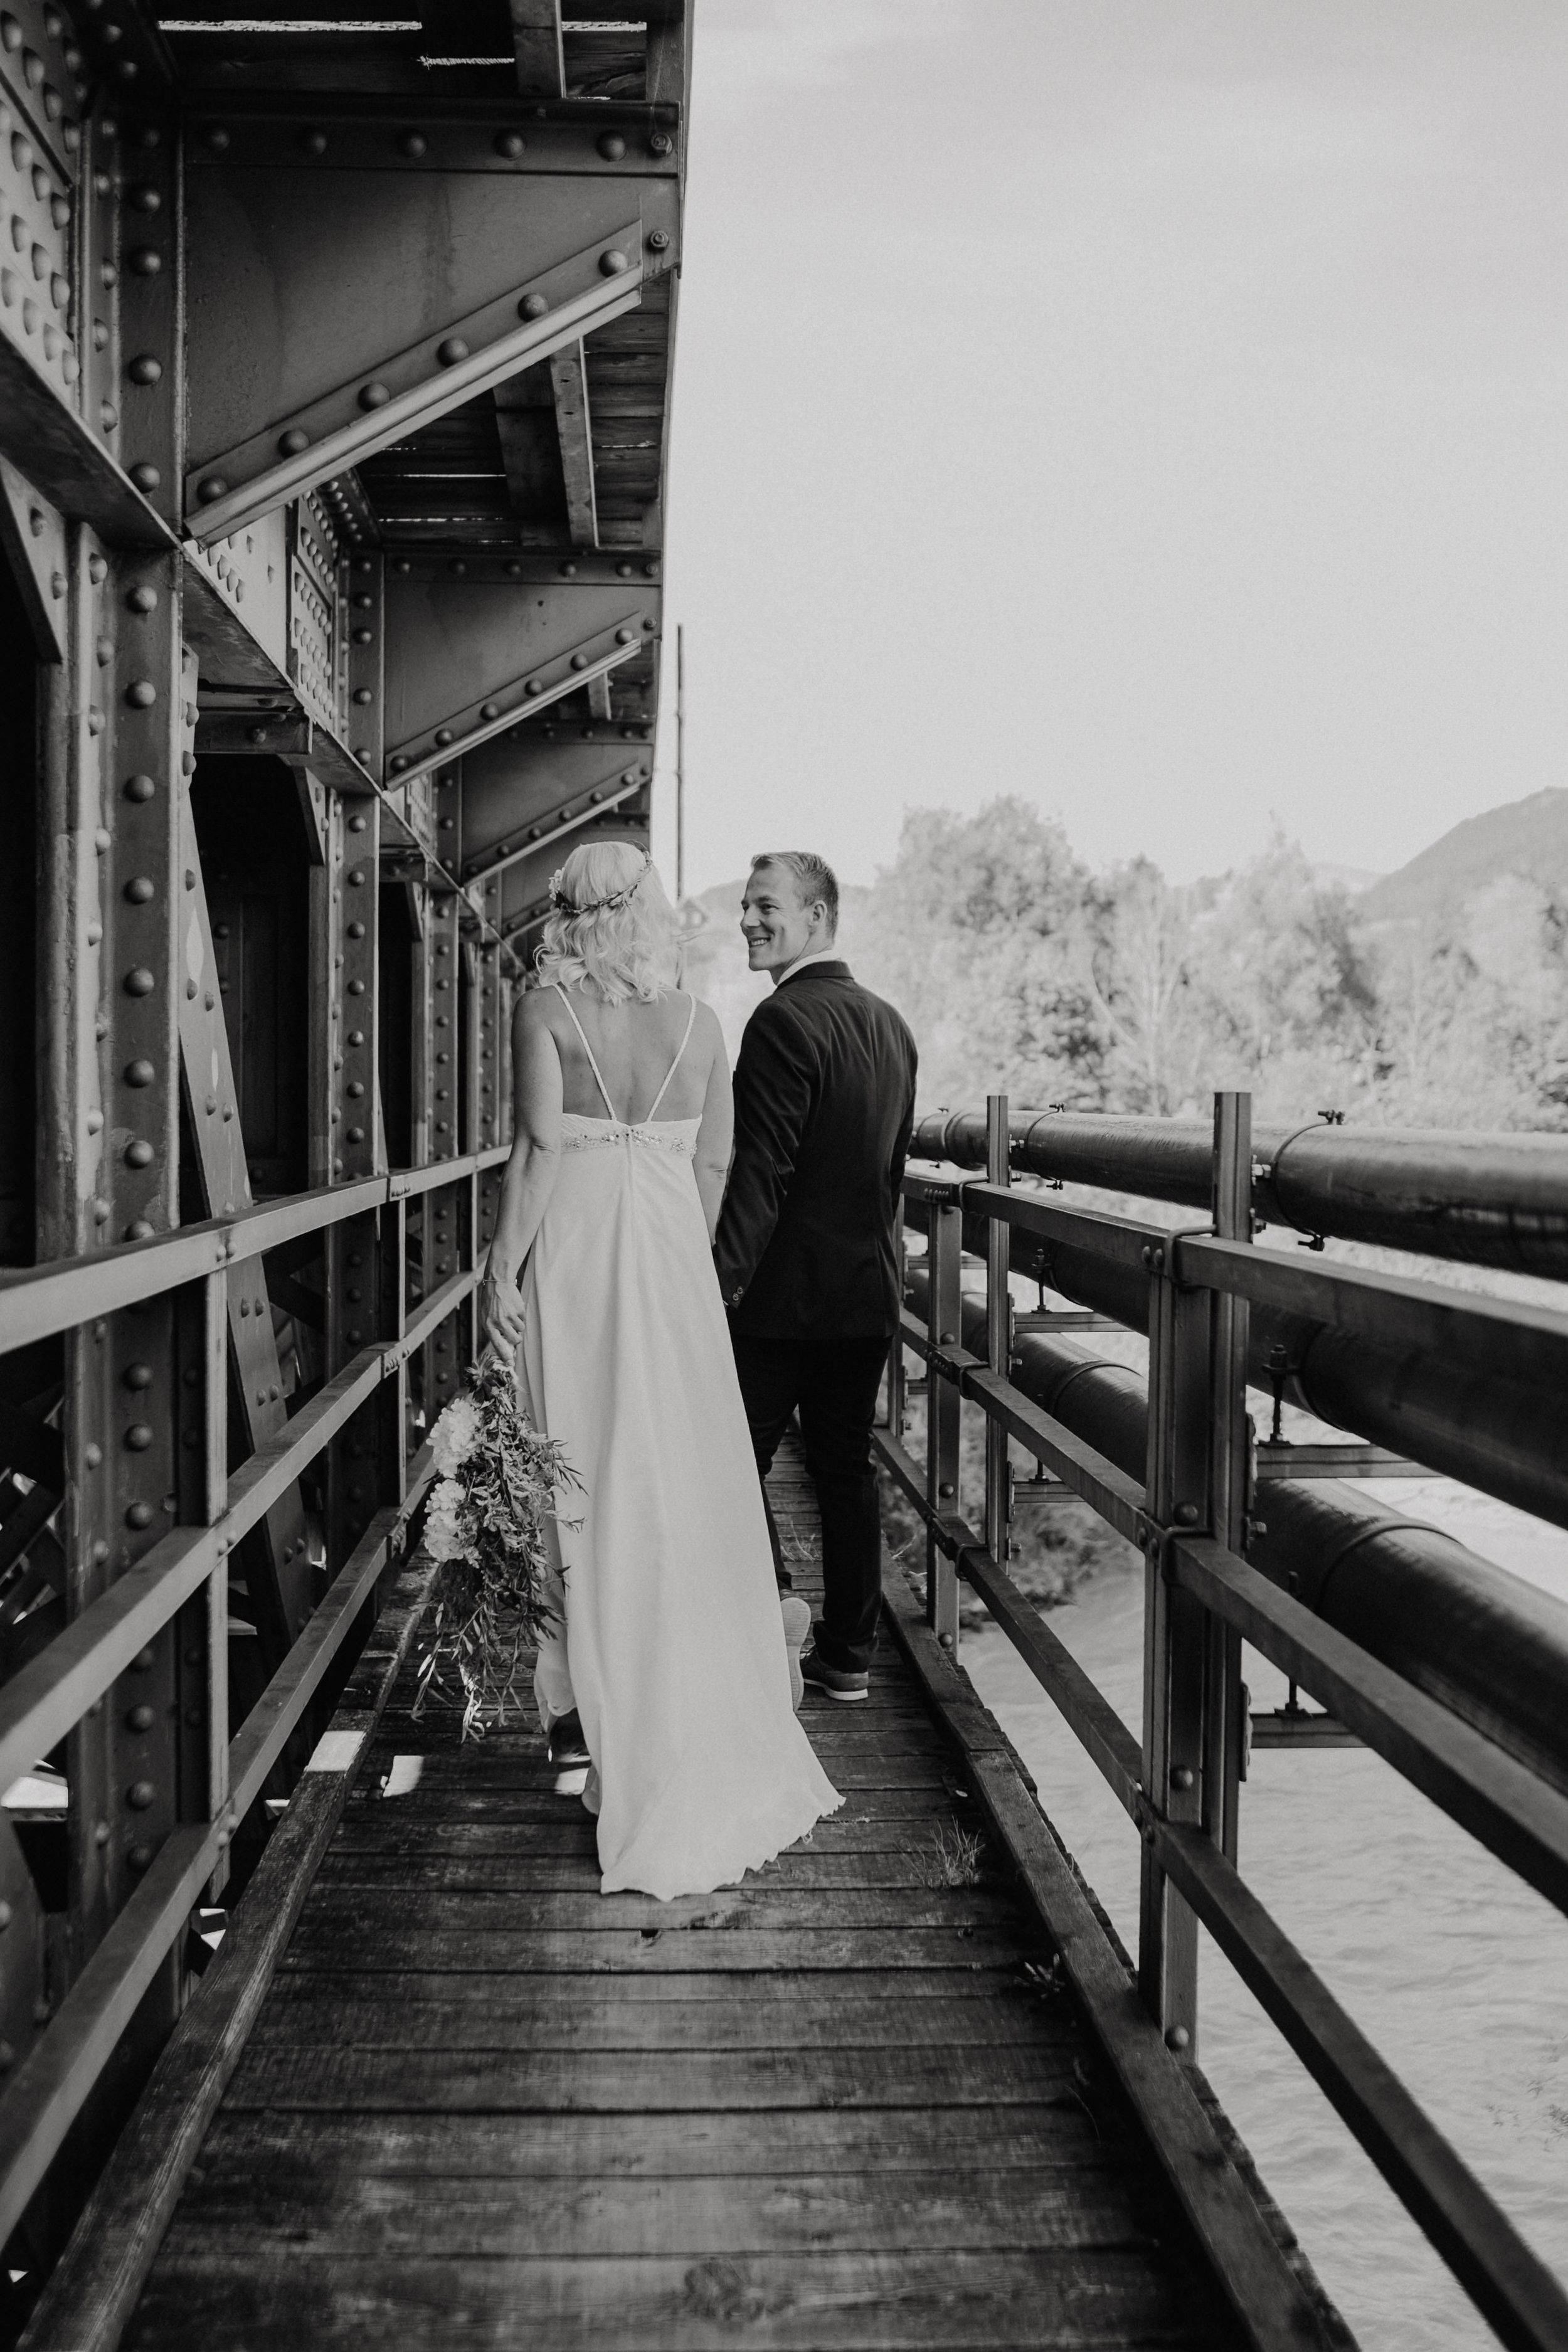 Weddingshoot Miss Freckles Photography-7.jpg